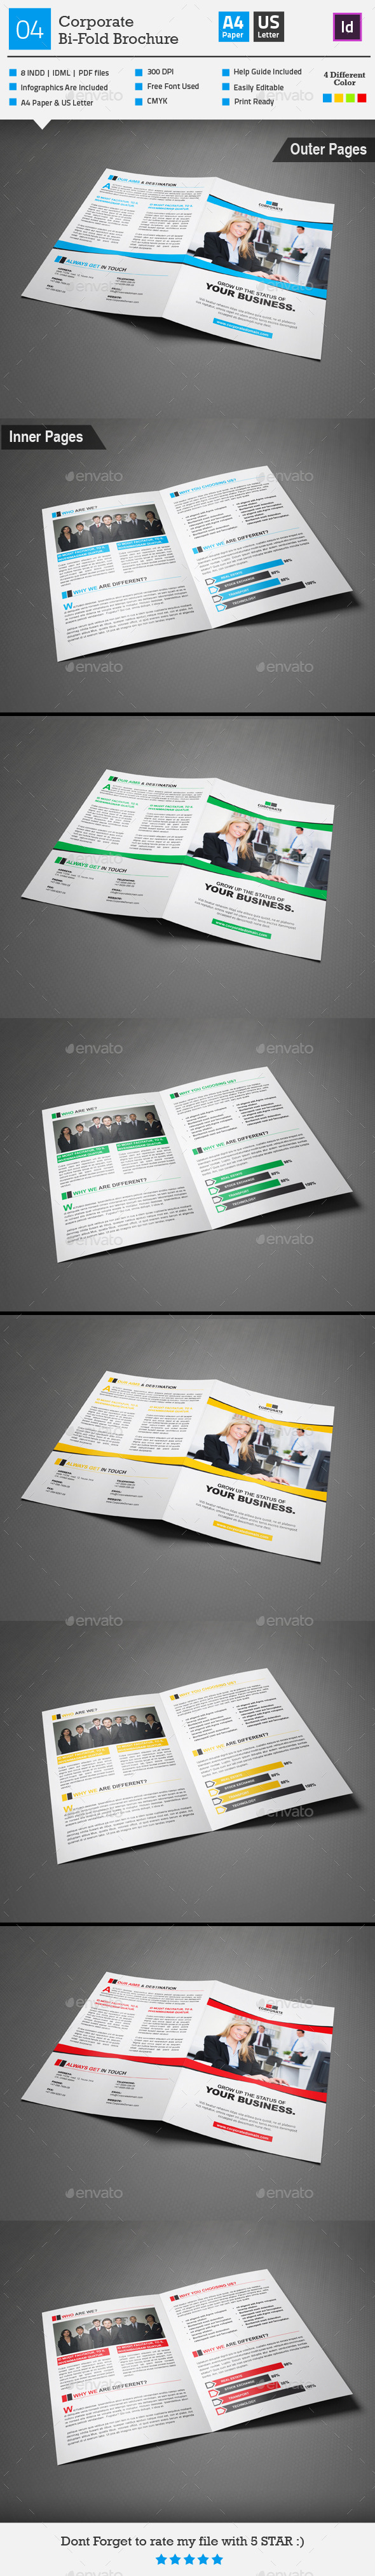 GraphicRiver Corporate Bi-fold Brochure 04 9164433